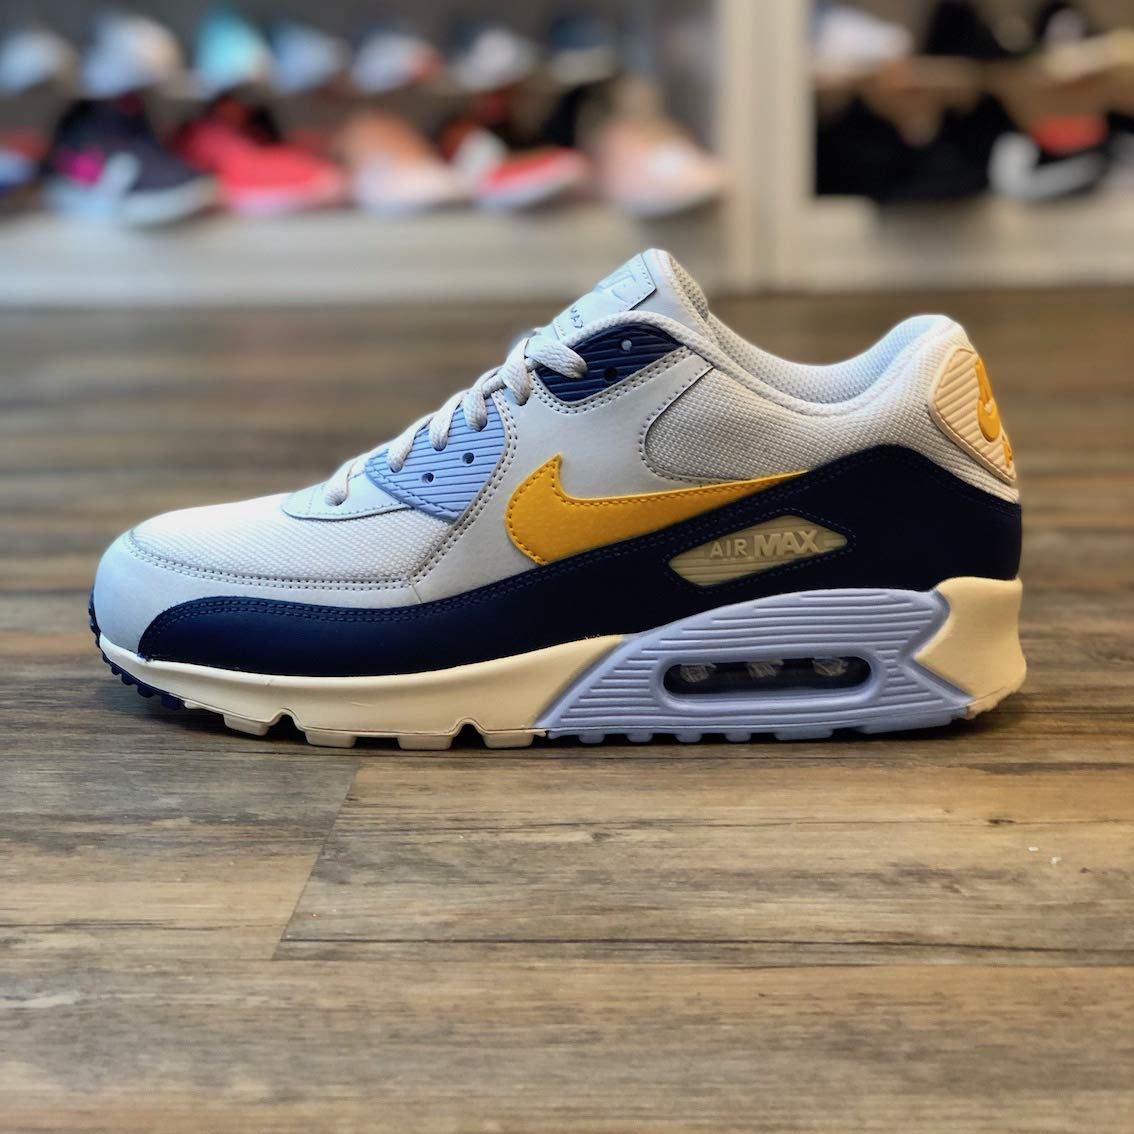 Nike Mens Air Max 90 Essential Running Shoes Pure PlatinumYellow OchreBlue Void AJ1285 008 Size 9.5